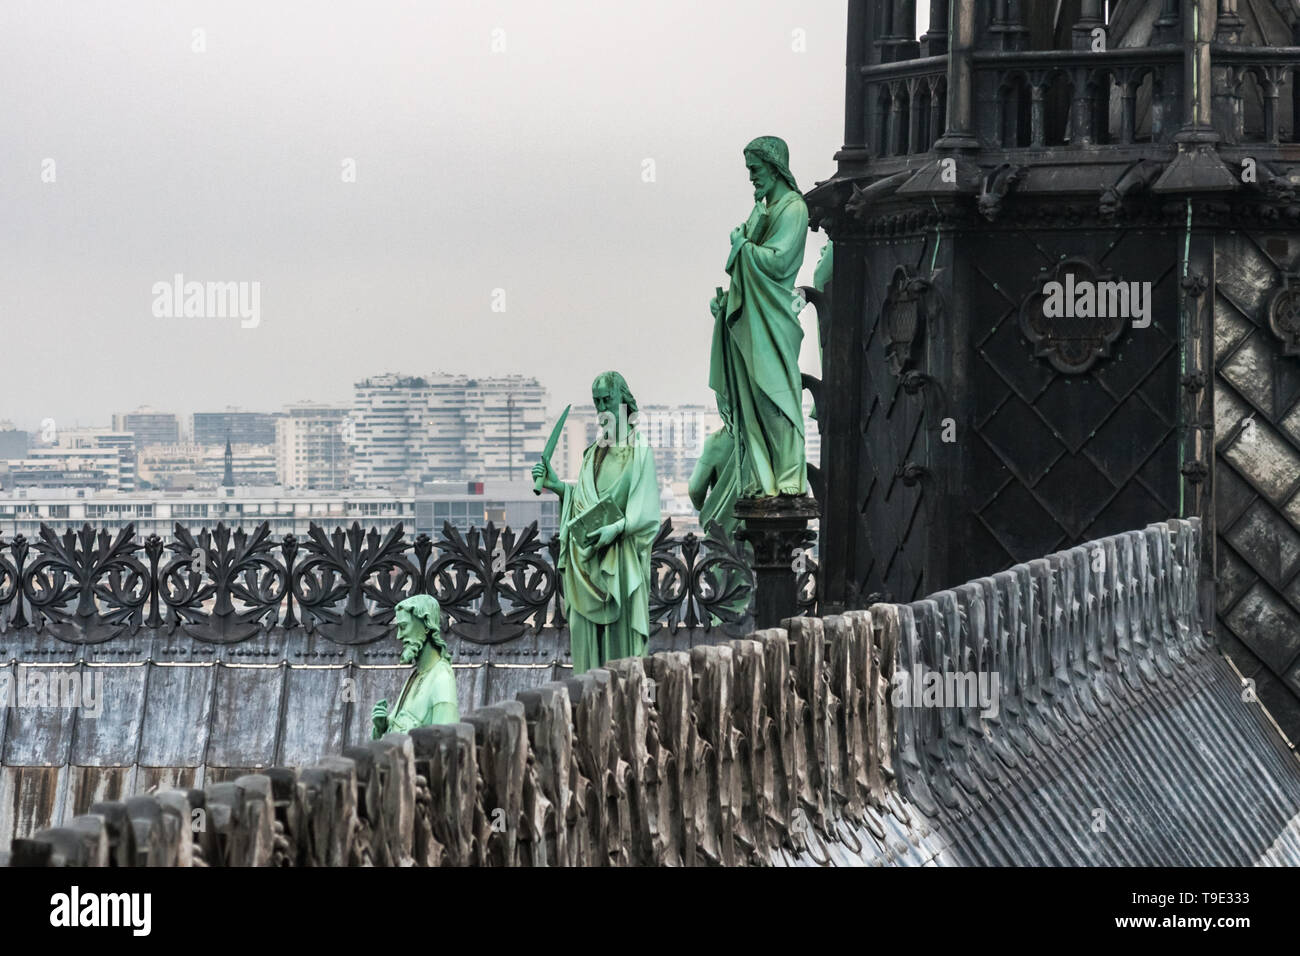 Lead statues around the spire of Notre Dame de Paris cathedral, Our Lady, international landmark, France. - Stock Image